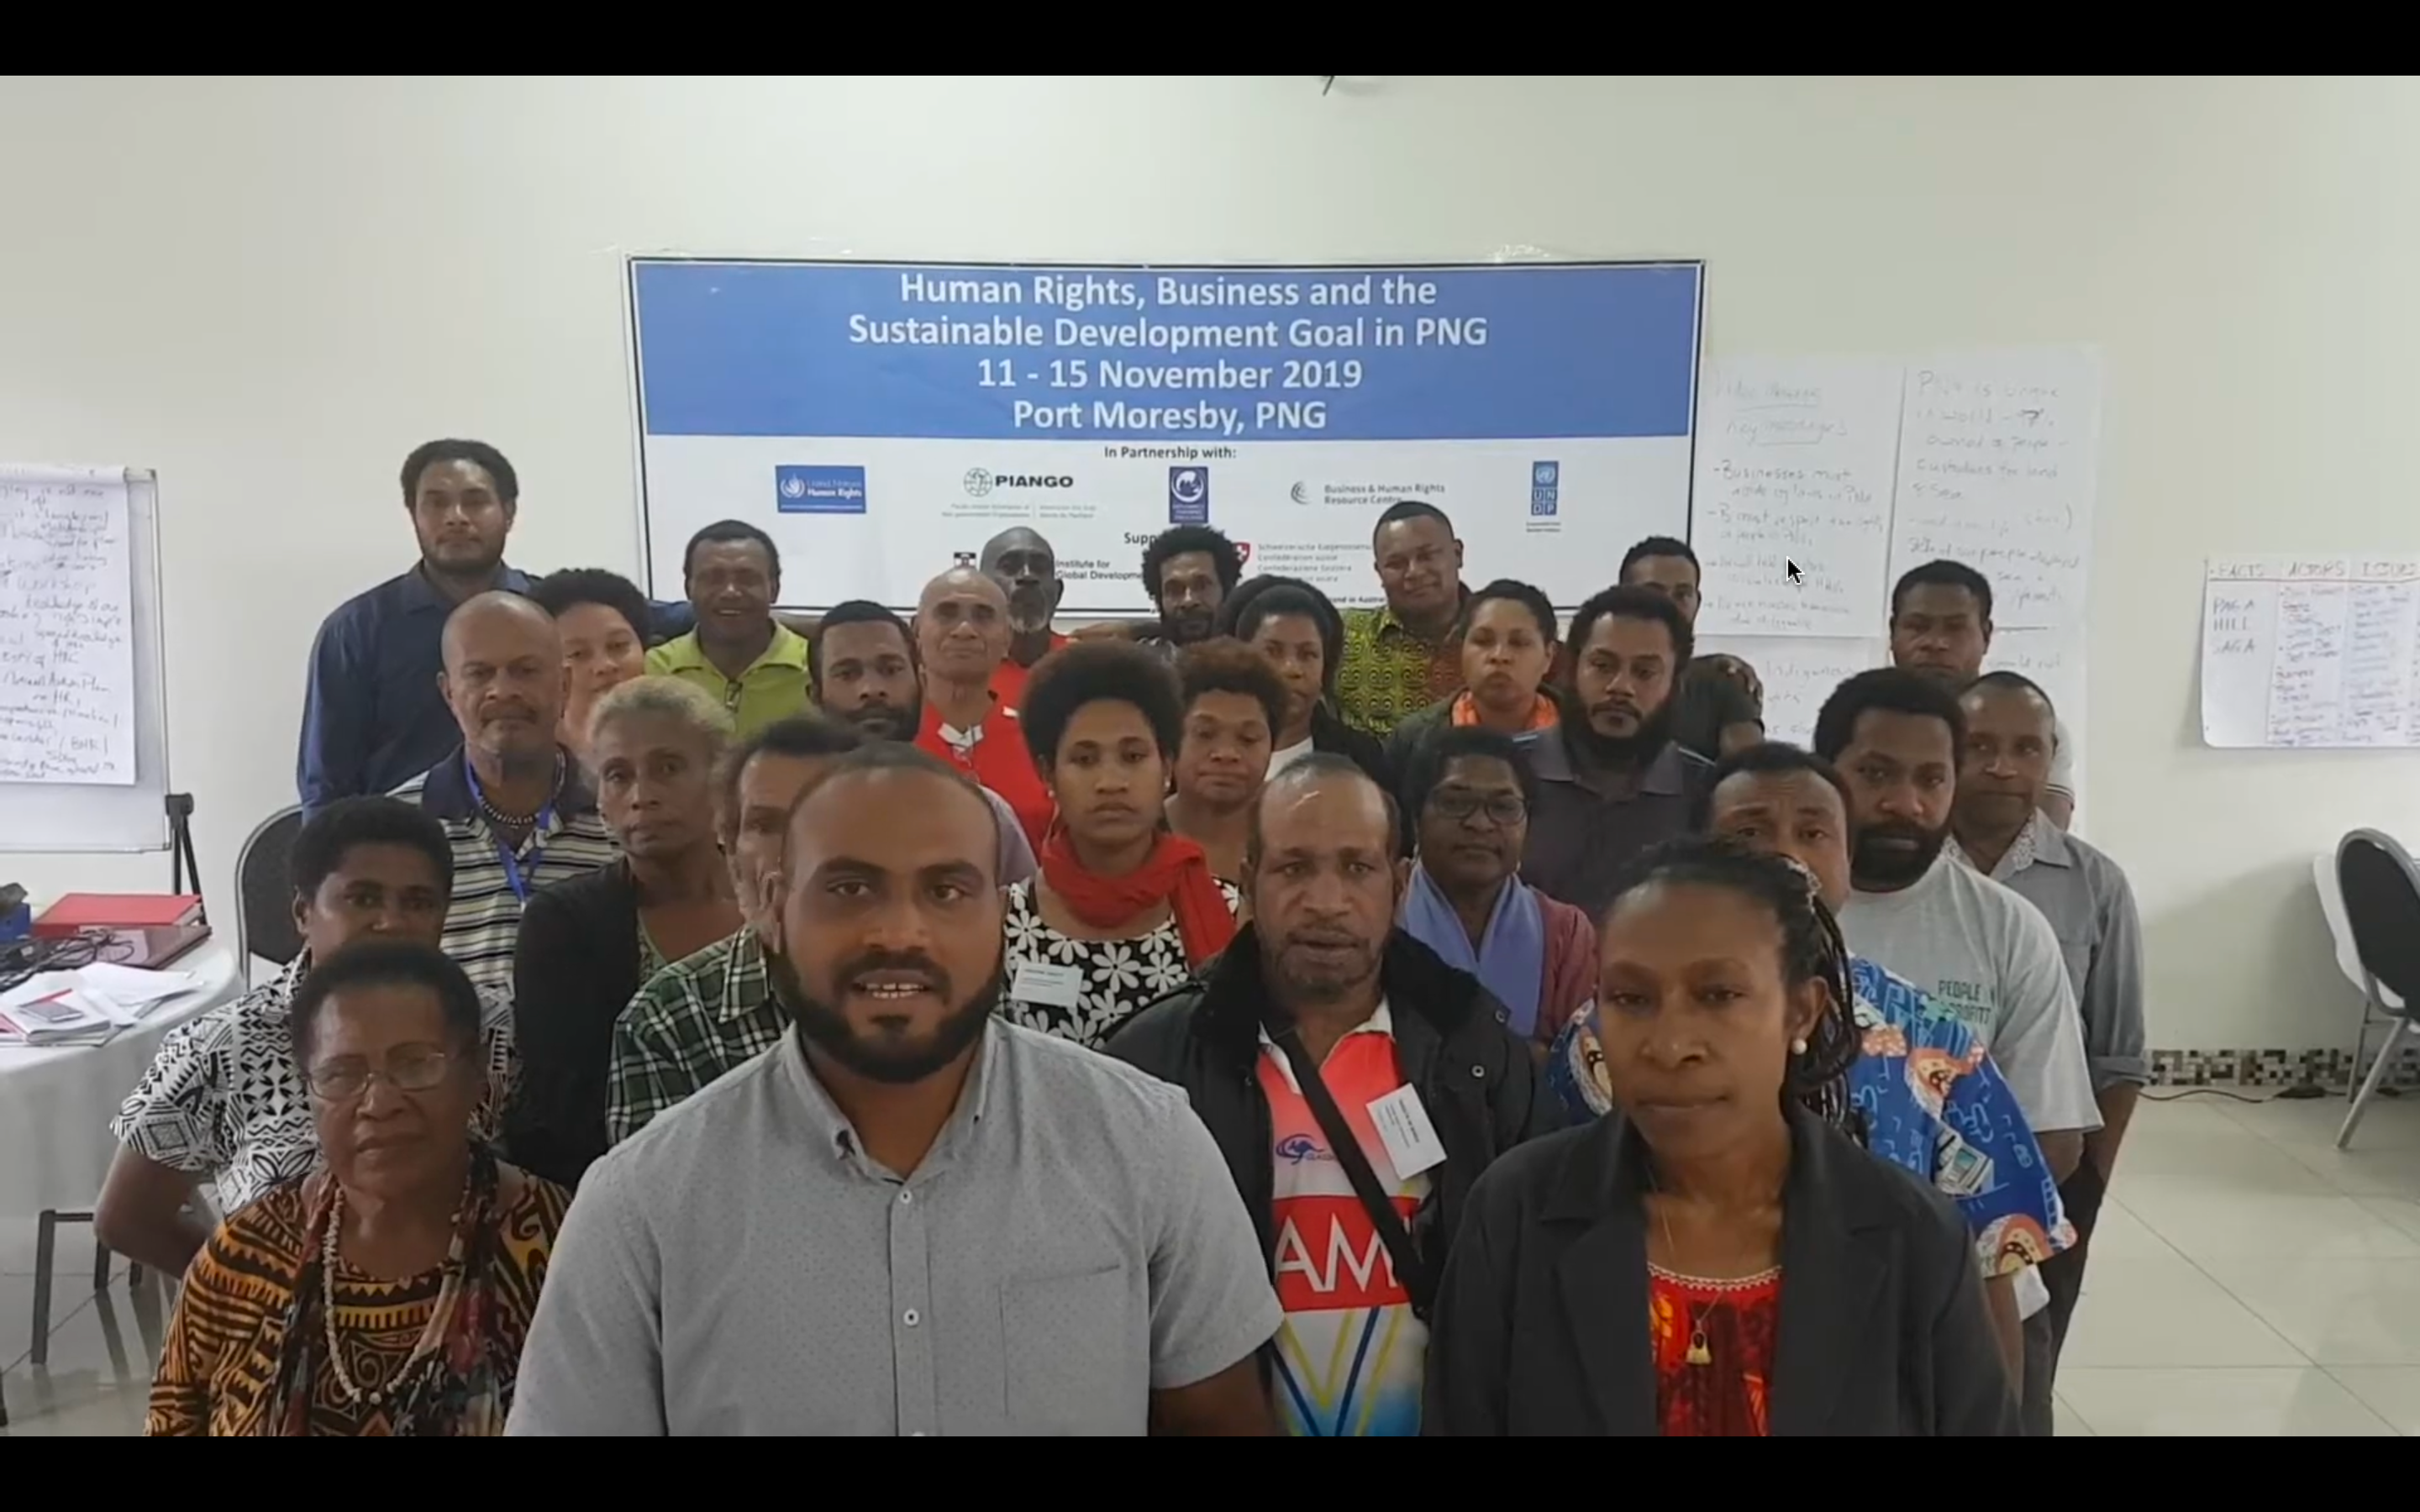 A message to the UN from Papua New Guinea BHR human rights defenders.